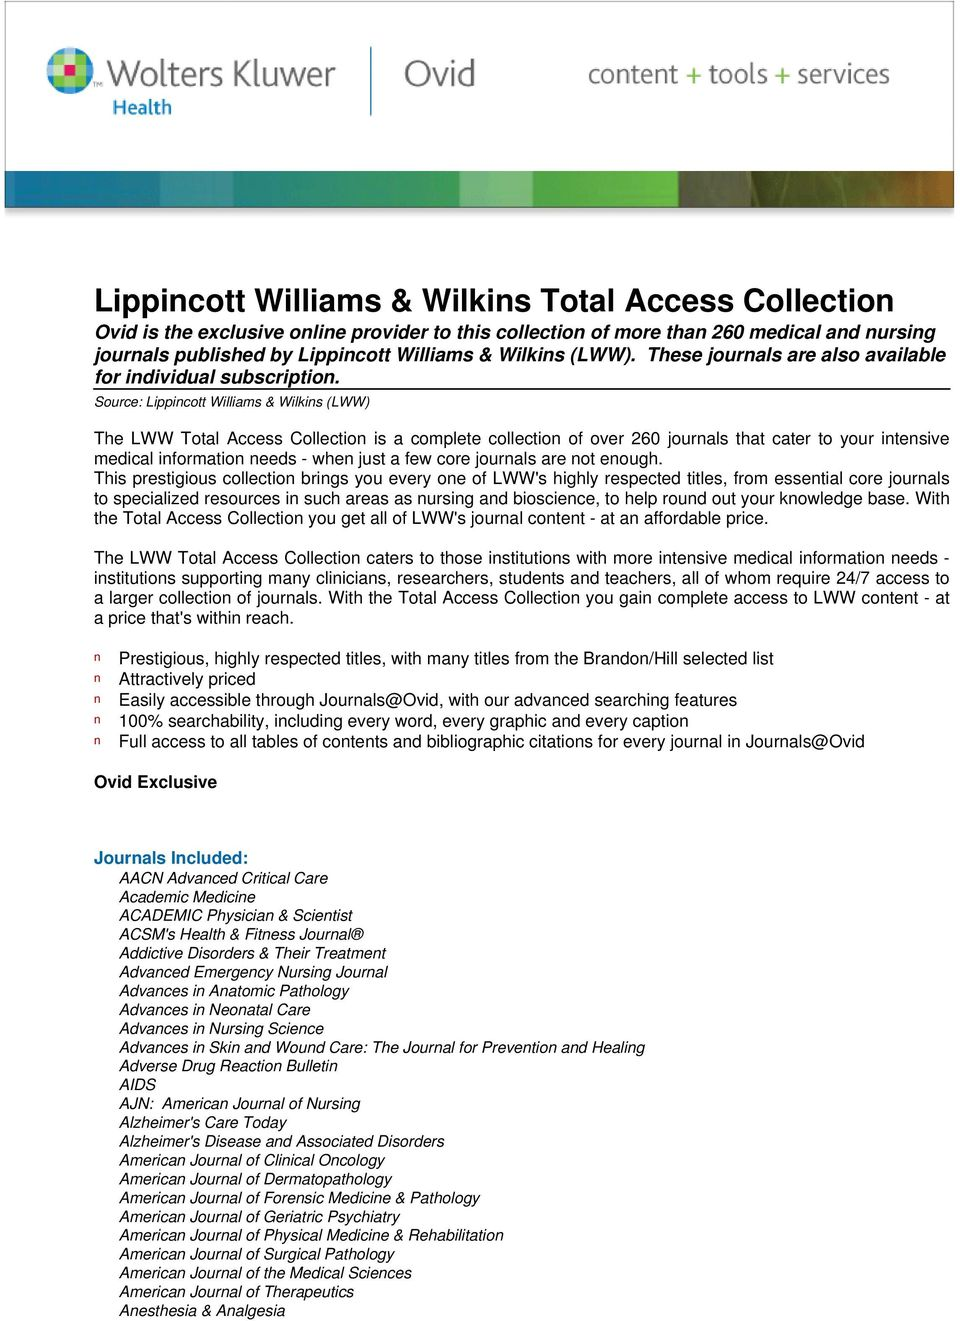 Source: Lippincott Williams & Wilkins (LWW) The LWW Total Access Collection is a complete collection of over 260 journals that cater to your intensive medical information needs - when just a few core